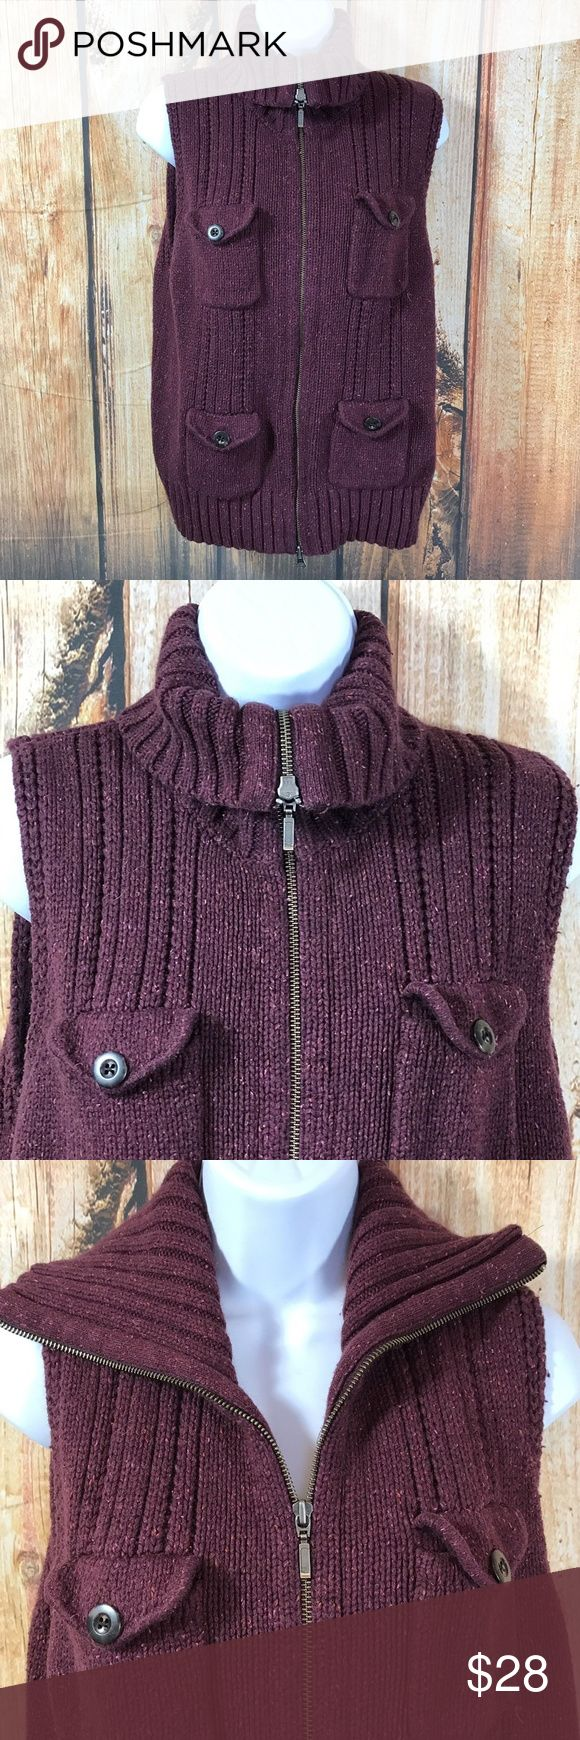 """Eddie Bauer Cotton Angora Knit Zip Vest Sweater Eddie Bauer  Zip up  Cargo pockets with button  closure  Ribbed collar, hem  Color is a maroon or purple with flecks of orange  58% Cotton,21% Nylon,16% Viscose,5% Angora Rabbit  Size Large  Measures about  18.5"""" across bust  Measures about  22"""" long from center back  Sleeves measure about  """" long from shoulder seam to cuff hem  Gently worn, good condition Eddie Bauer Sweaters Cowl & Turtlenecks"""